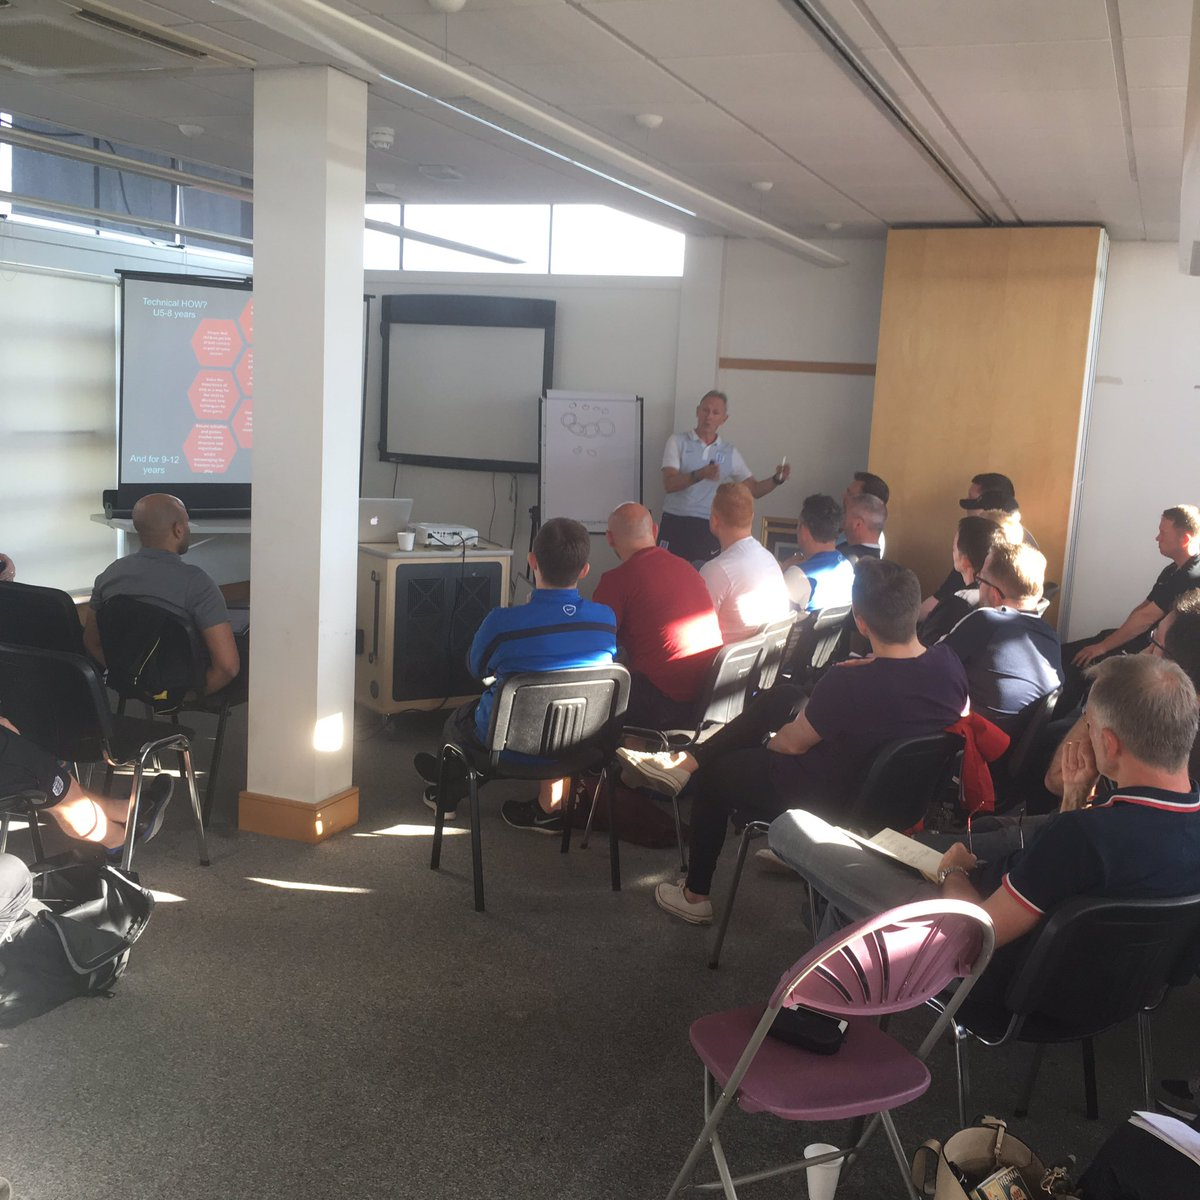 | @sturge_p delivering the #England #DNA to coaches tonight at #DurhamFA #FALCC Event <br>http://pic.twitter.com/fMQJA1WGhS